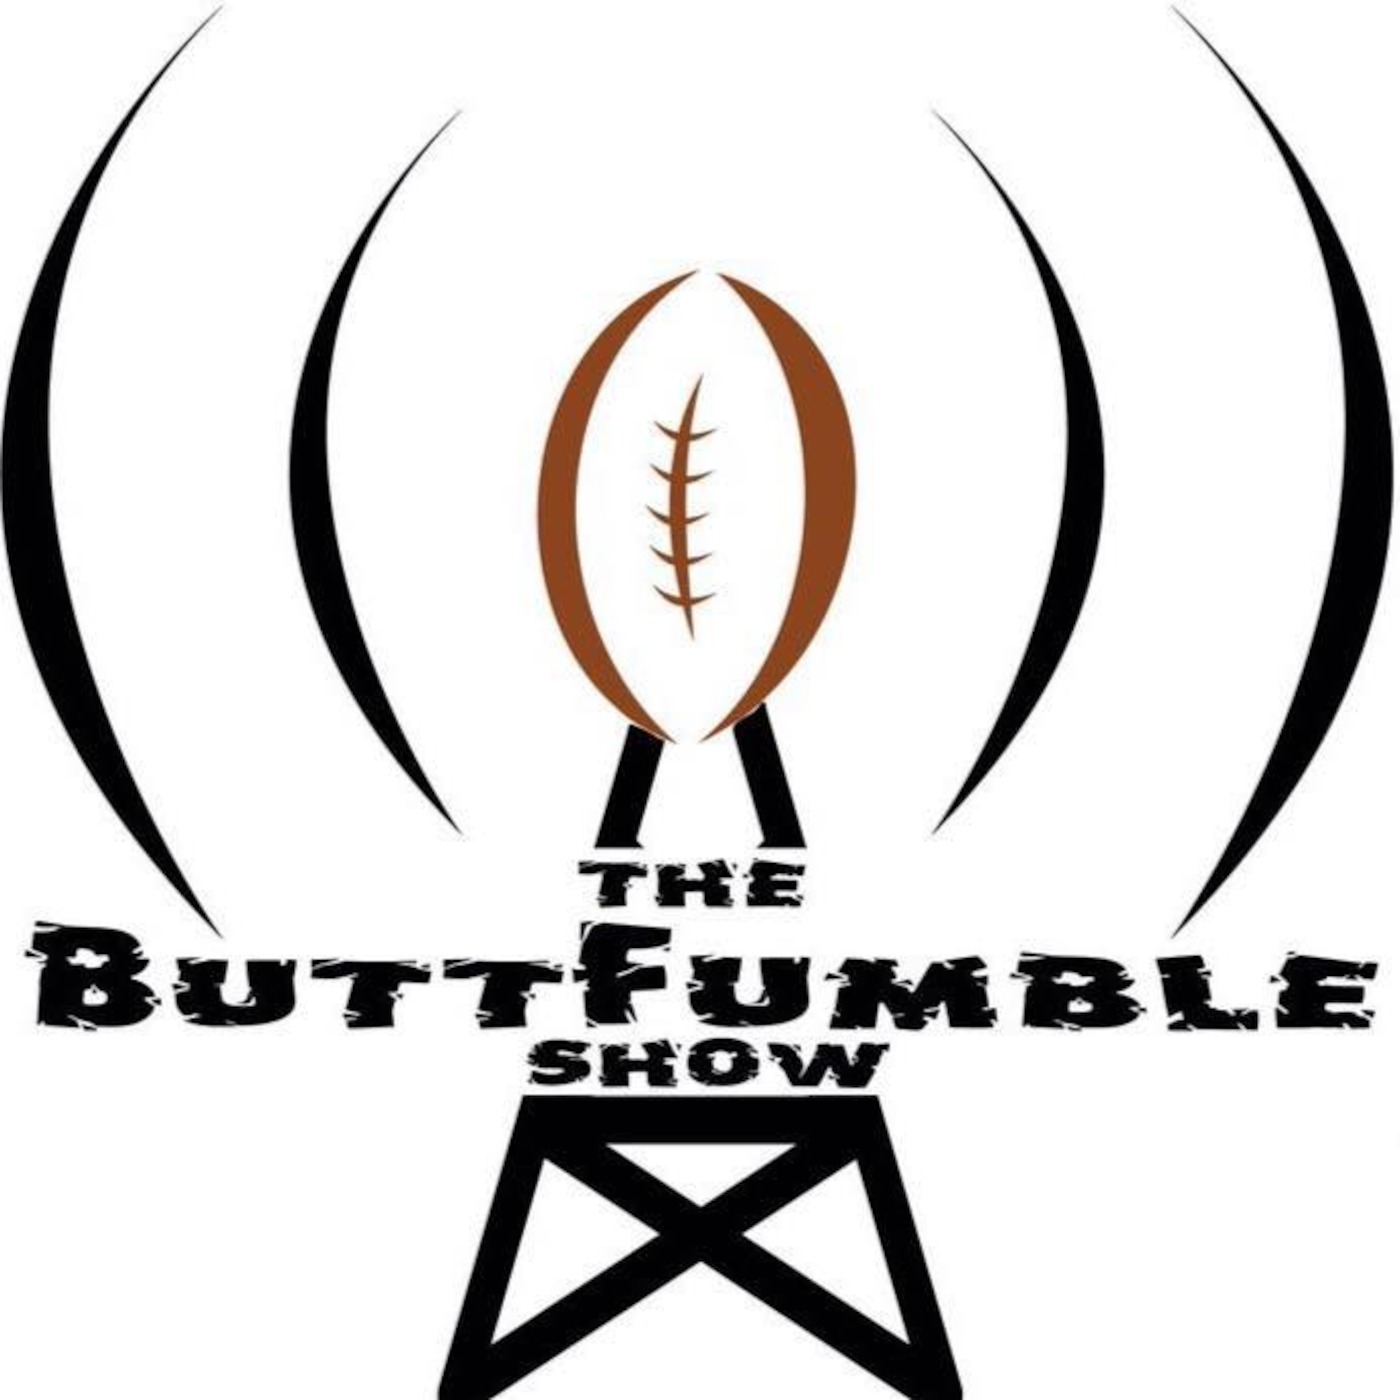 The ButtFumble Show